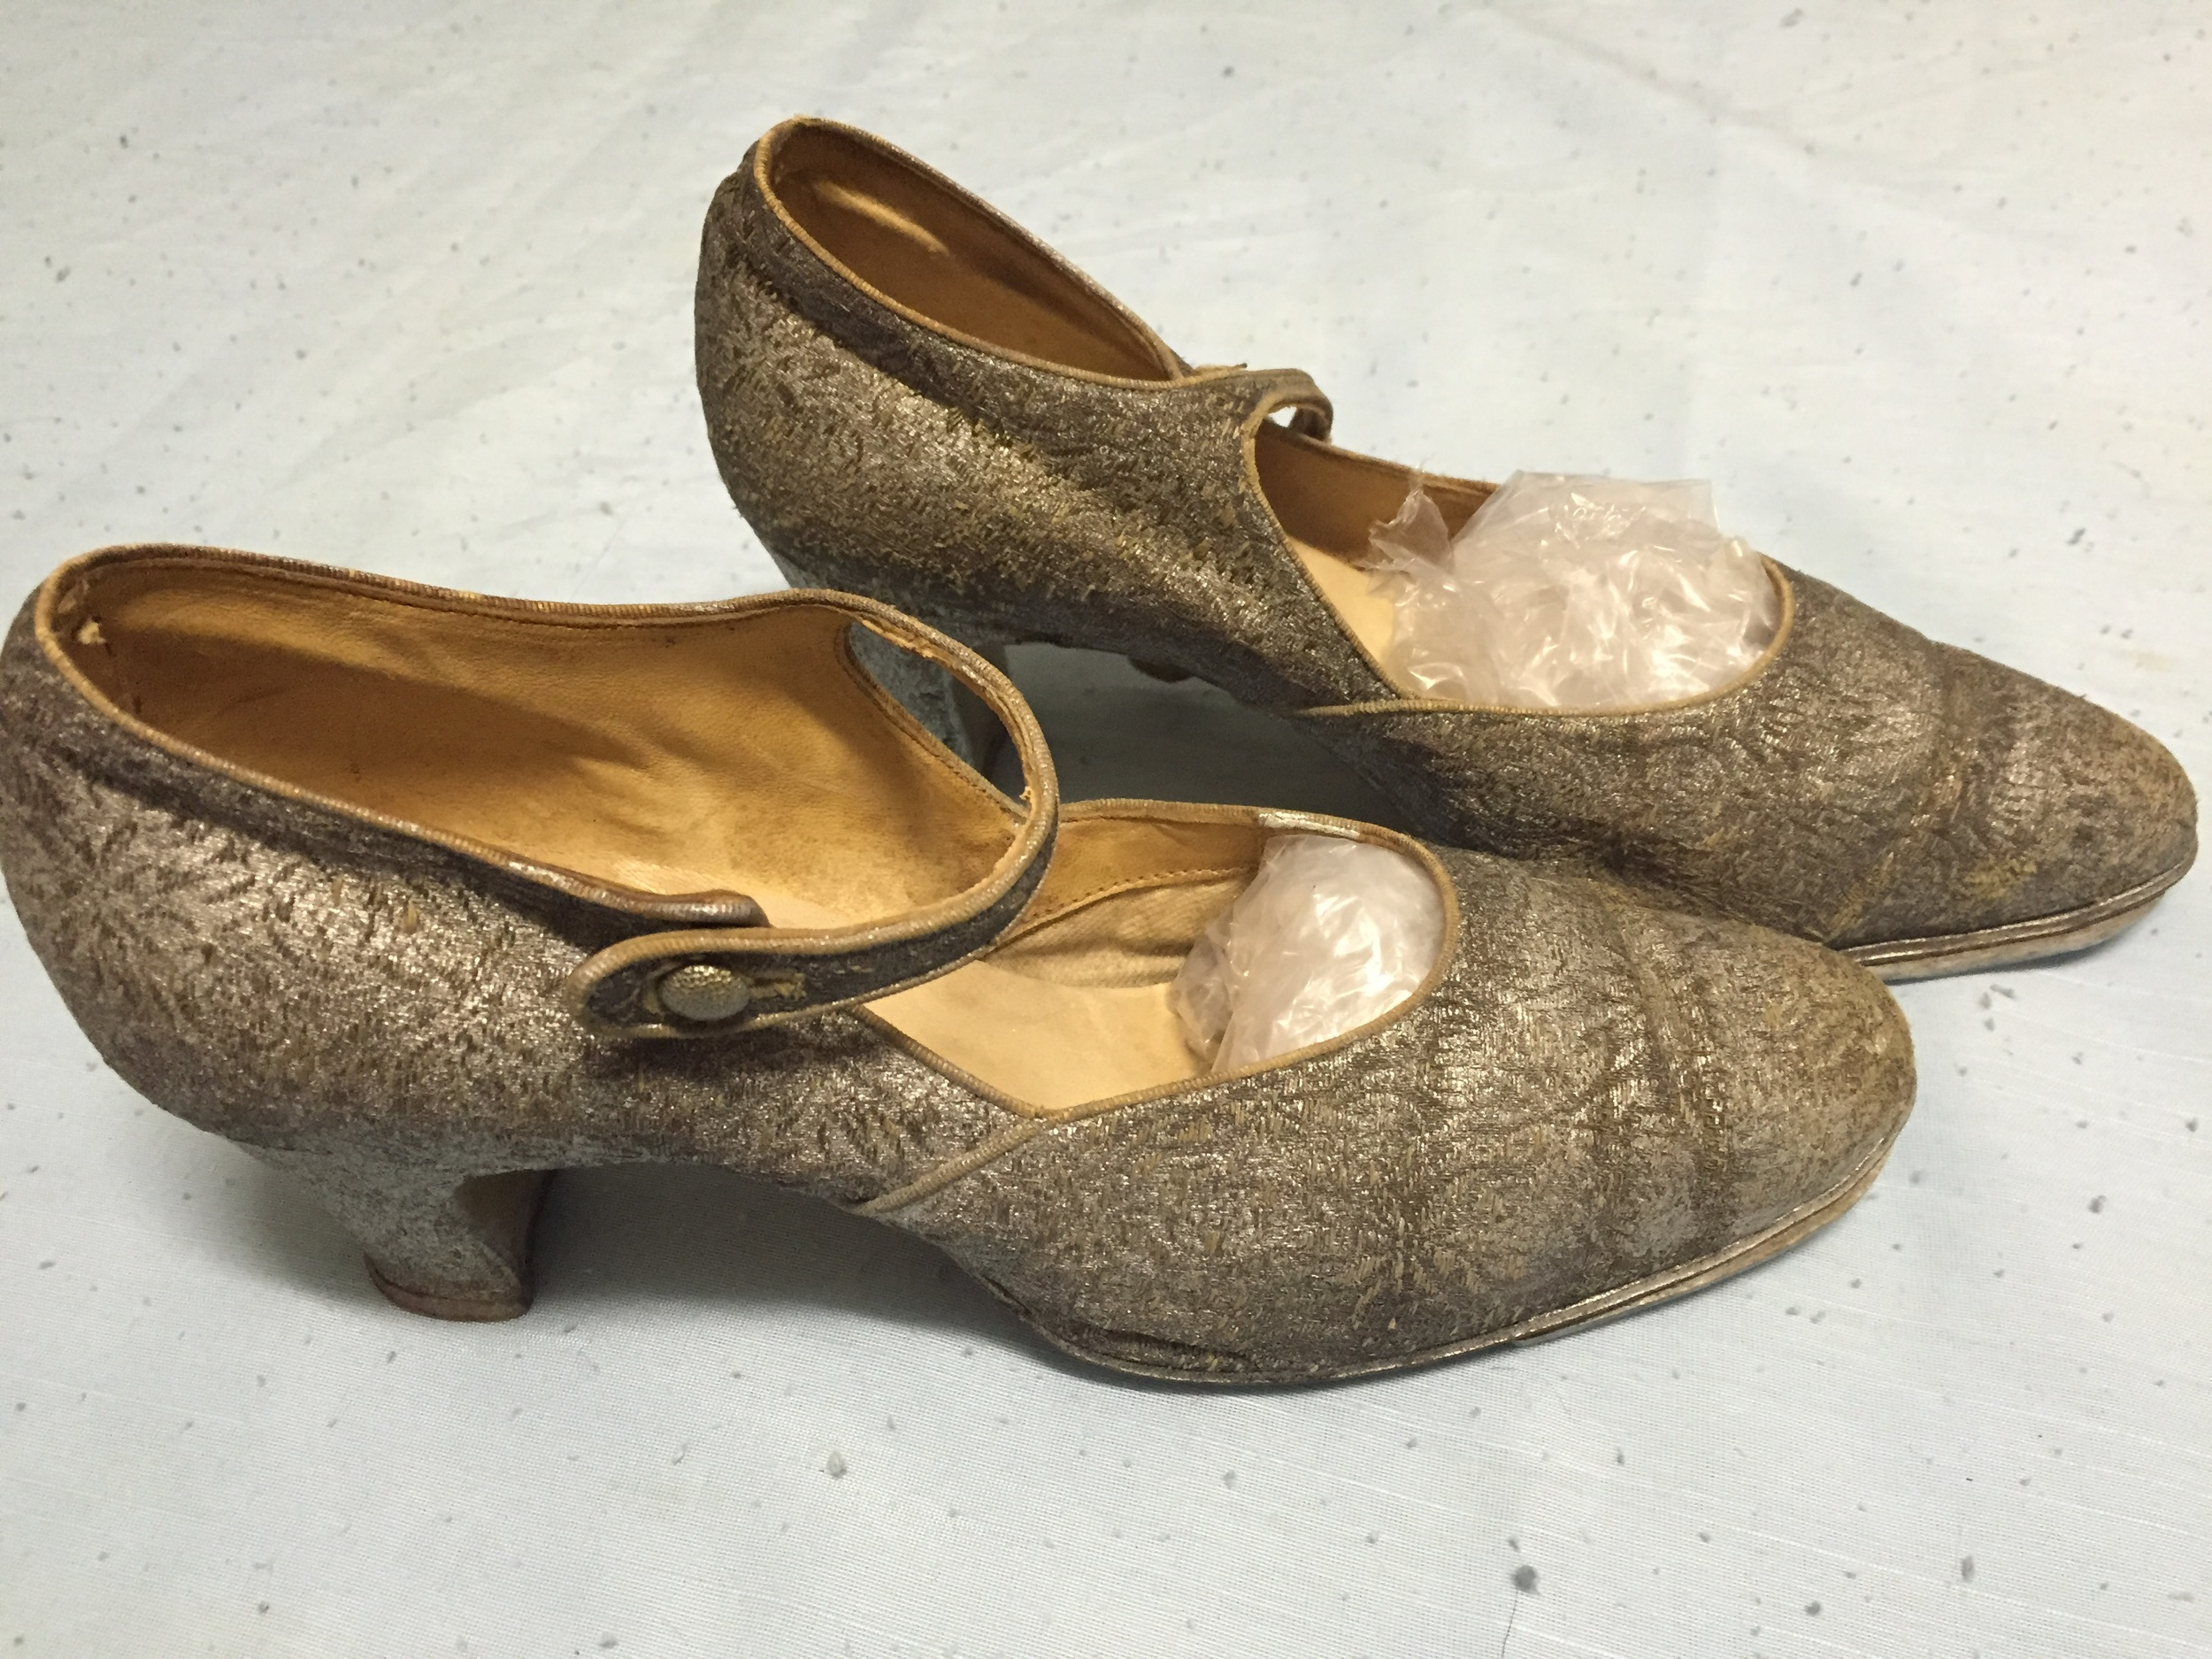 A pair of lovely 1930s tap shoes at the Benella Costume Museum.